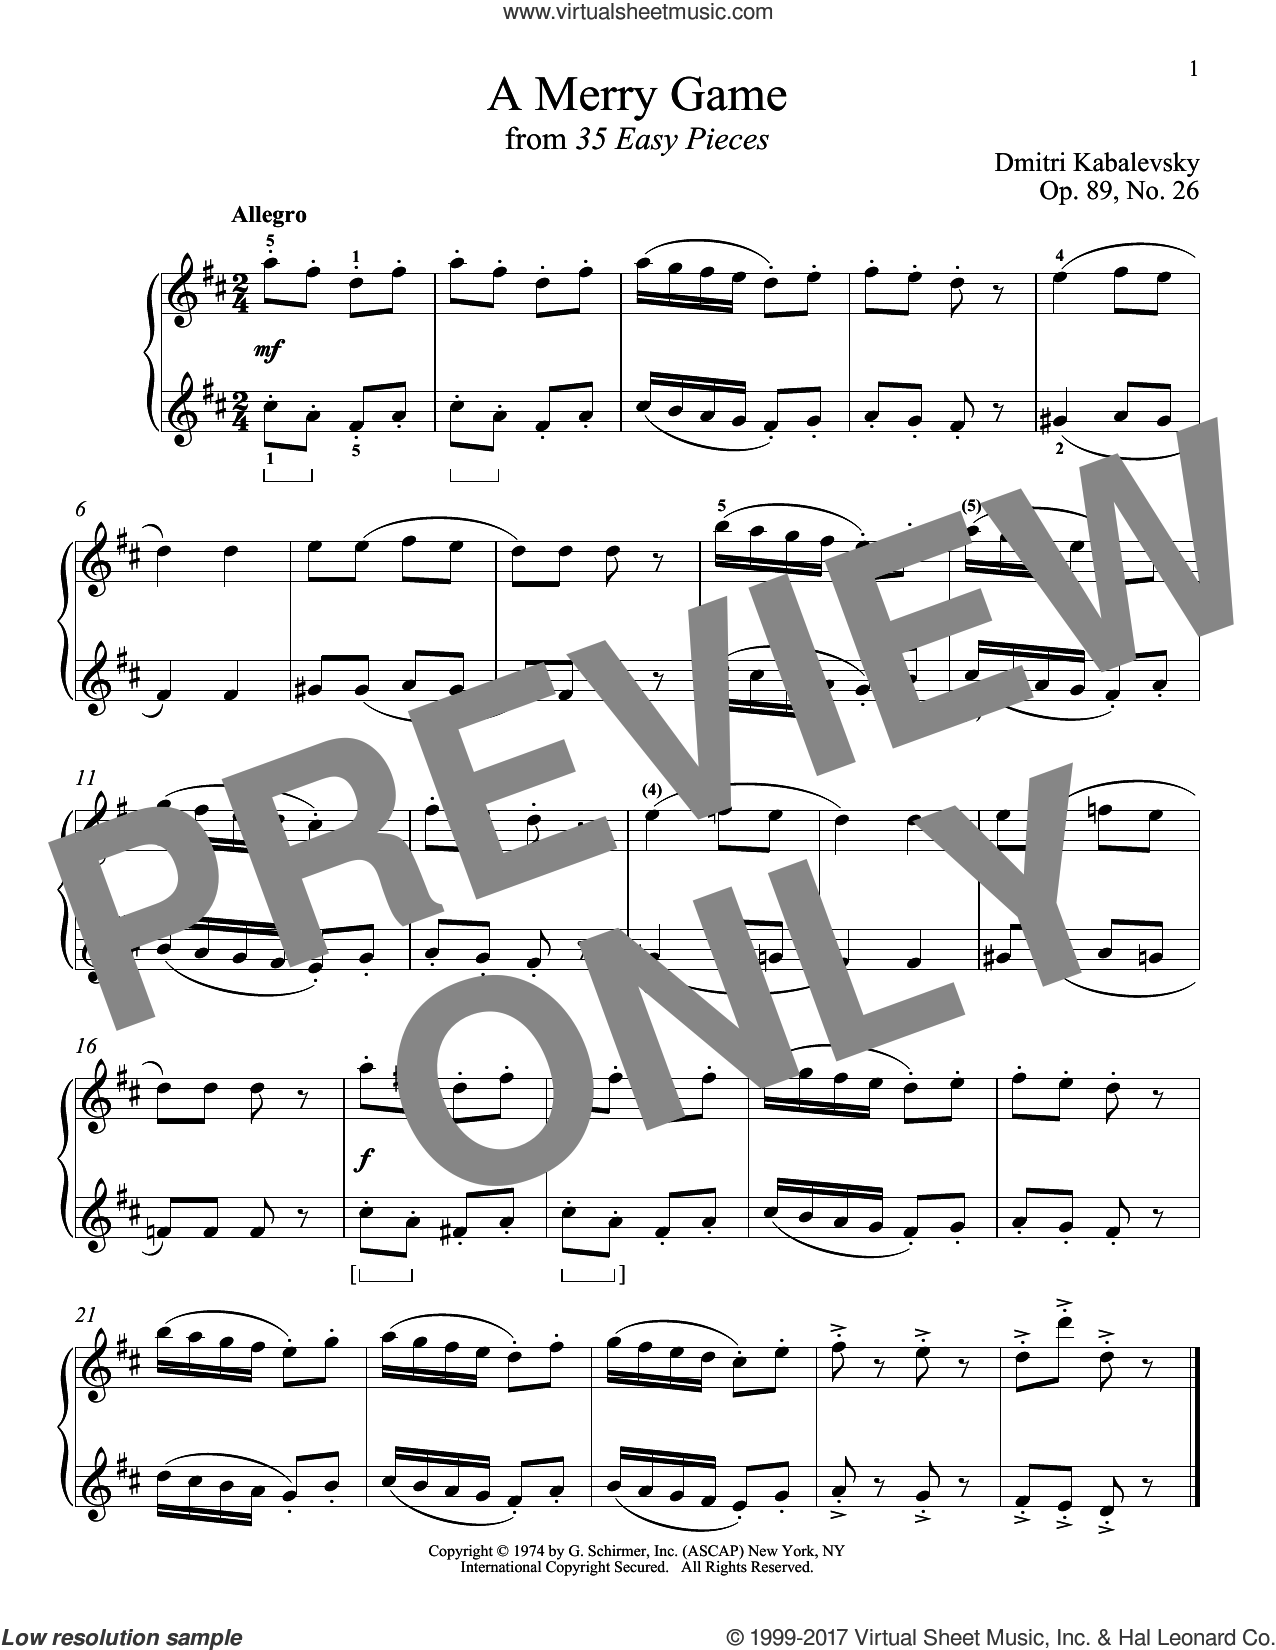 A Merry Game sheet music for piano solo by Dmitri Kabalevsky, classical score, intermediate skill level